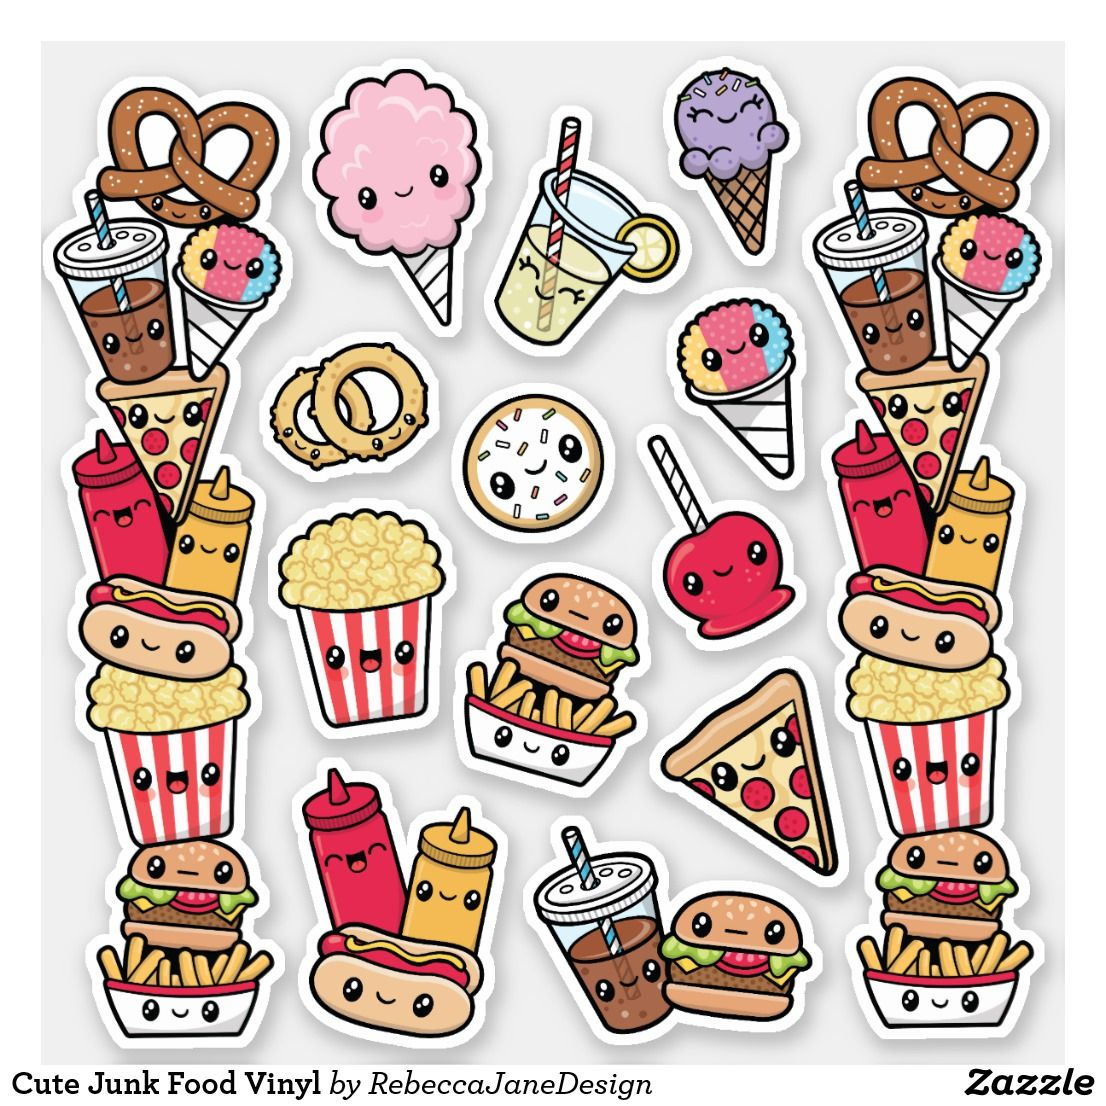 Cute Junk Food Vinyl Sticker Zazzle Com Cute Food Drawings